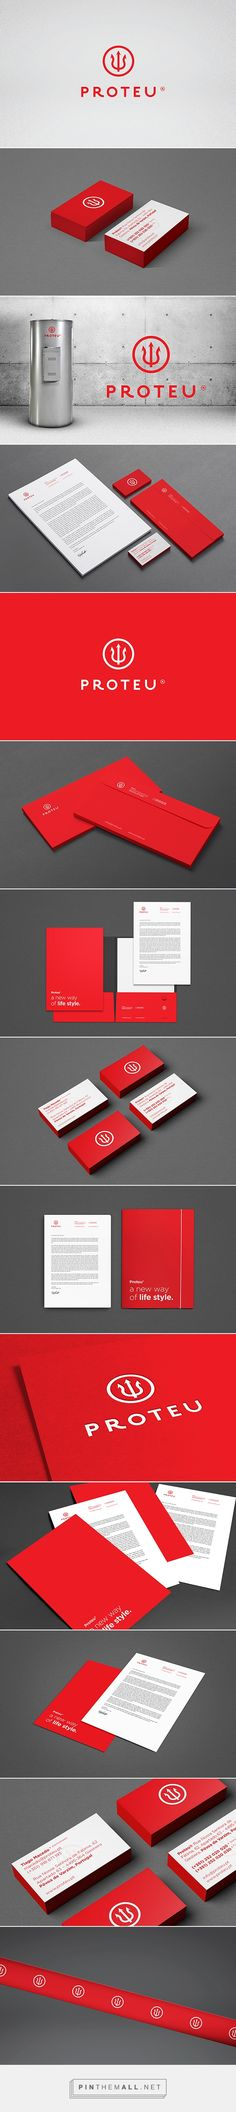 Proteu® by Another Collective on Behance | Fivestar Branding – Design and Branding Agency & Inspiration Gallery